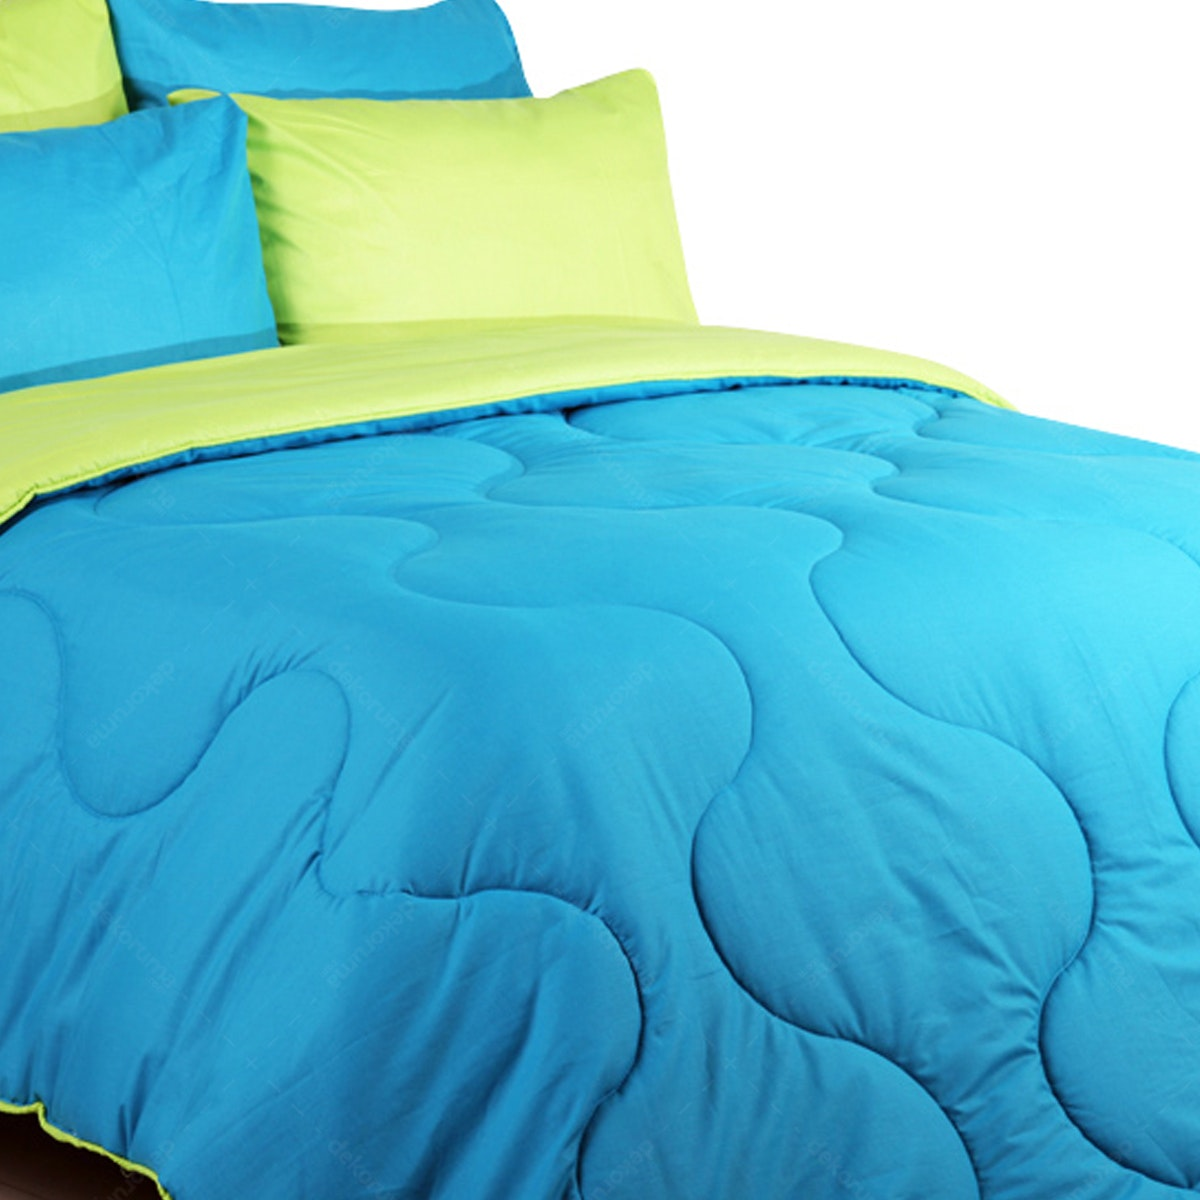 Sierra Bed Cover Dan Sprei Polos Tosca Mix Lime 160x200